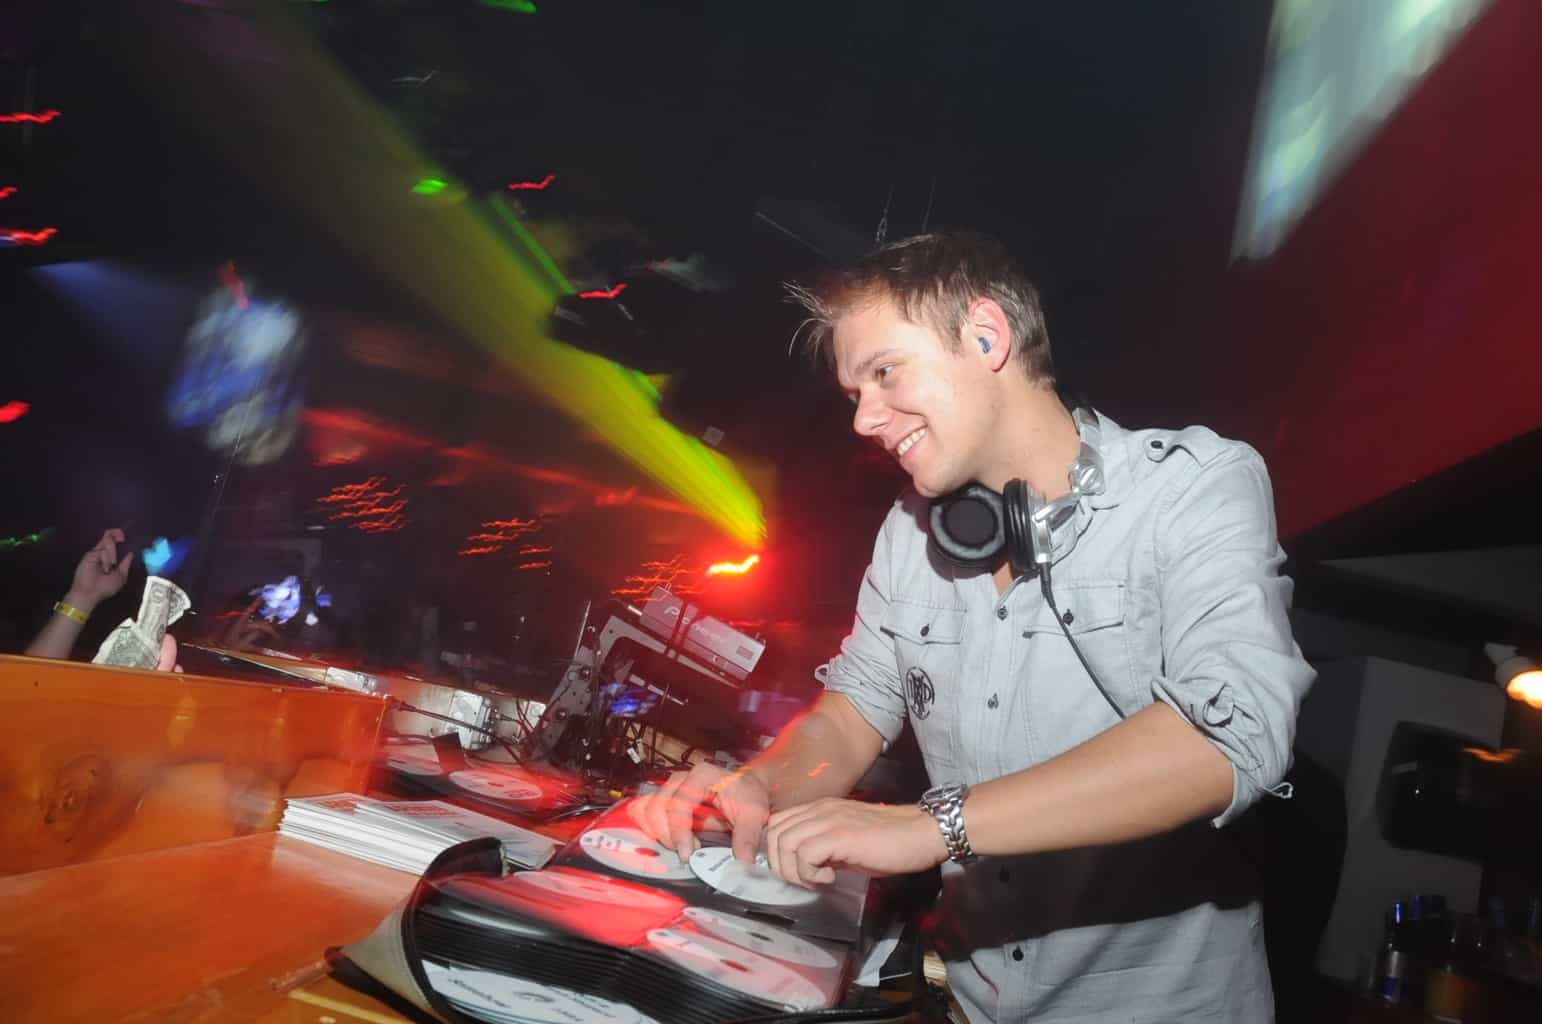 Armin van Buuren and Others Confirmed as Speakers for Electronic Music Conference